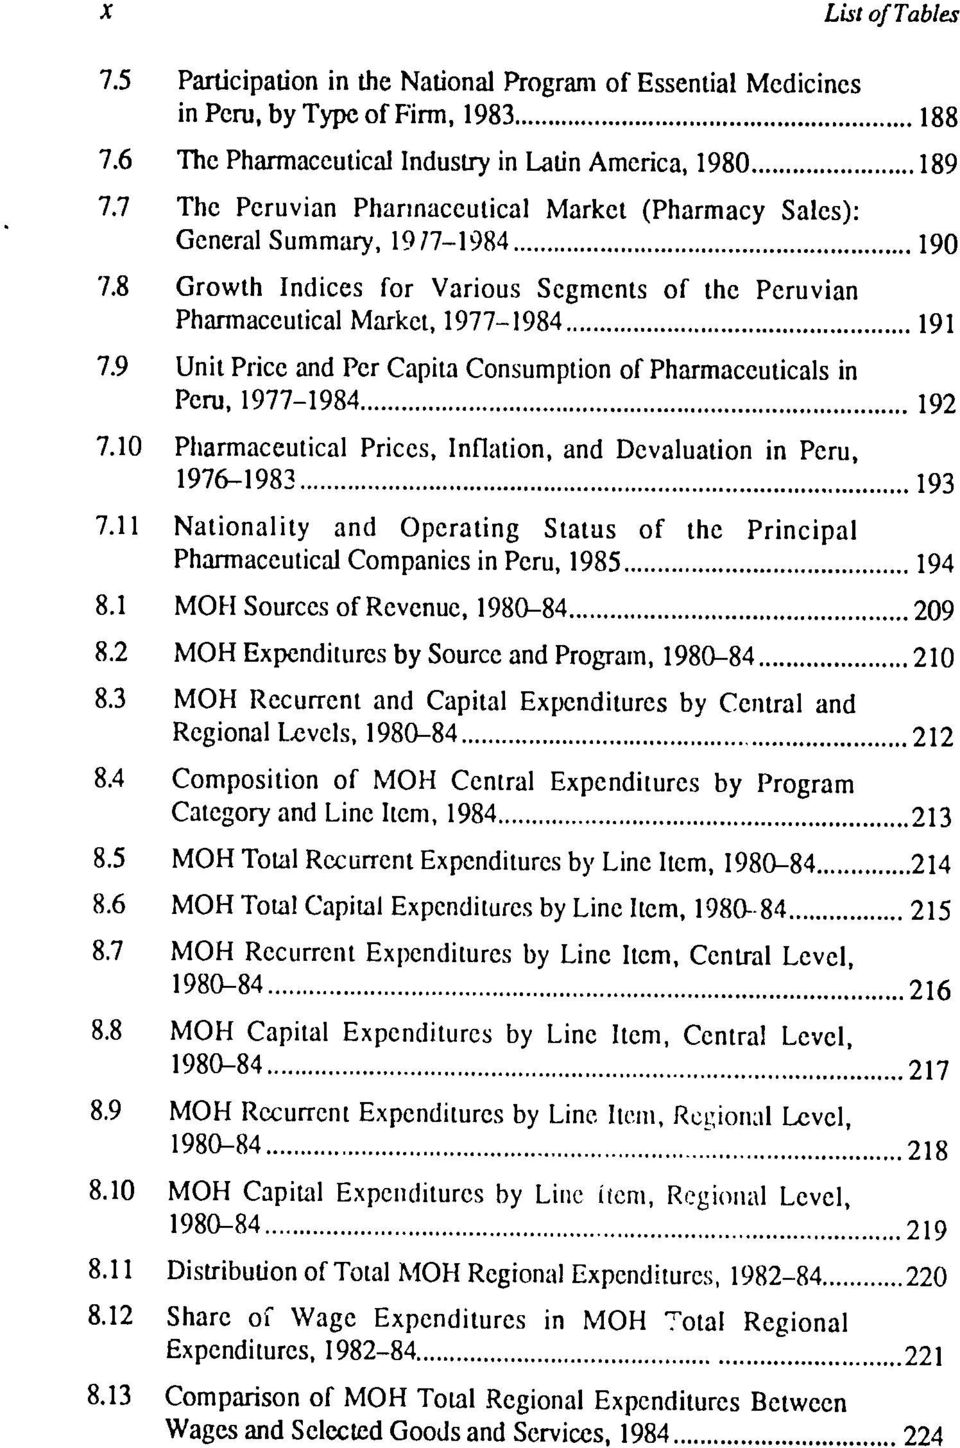 .. 192 7.1 Pharmaceutical Prices, Inflation, and Devaluation in Peru, 1976-1983... 193 7.11 Nationality and Operating Status of the Principal Pharmaceutical Companies in Peru, 1985... 194 8.